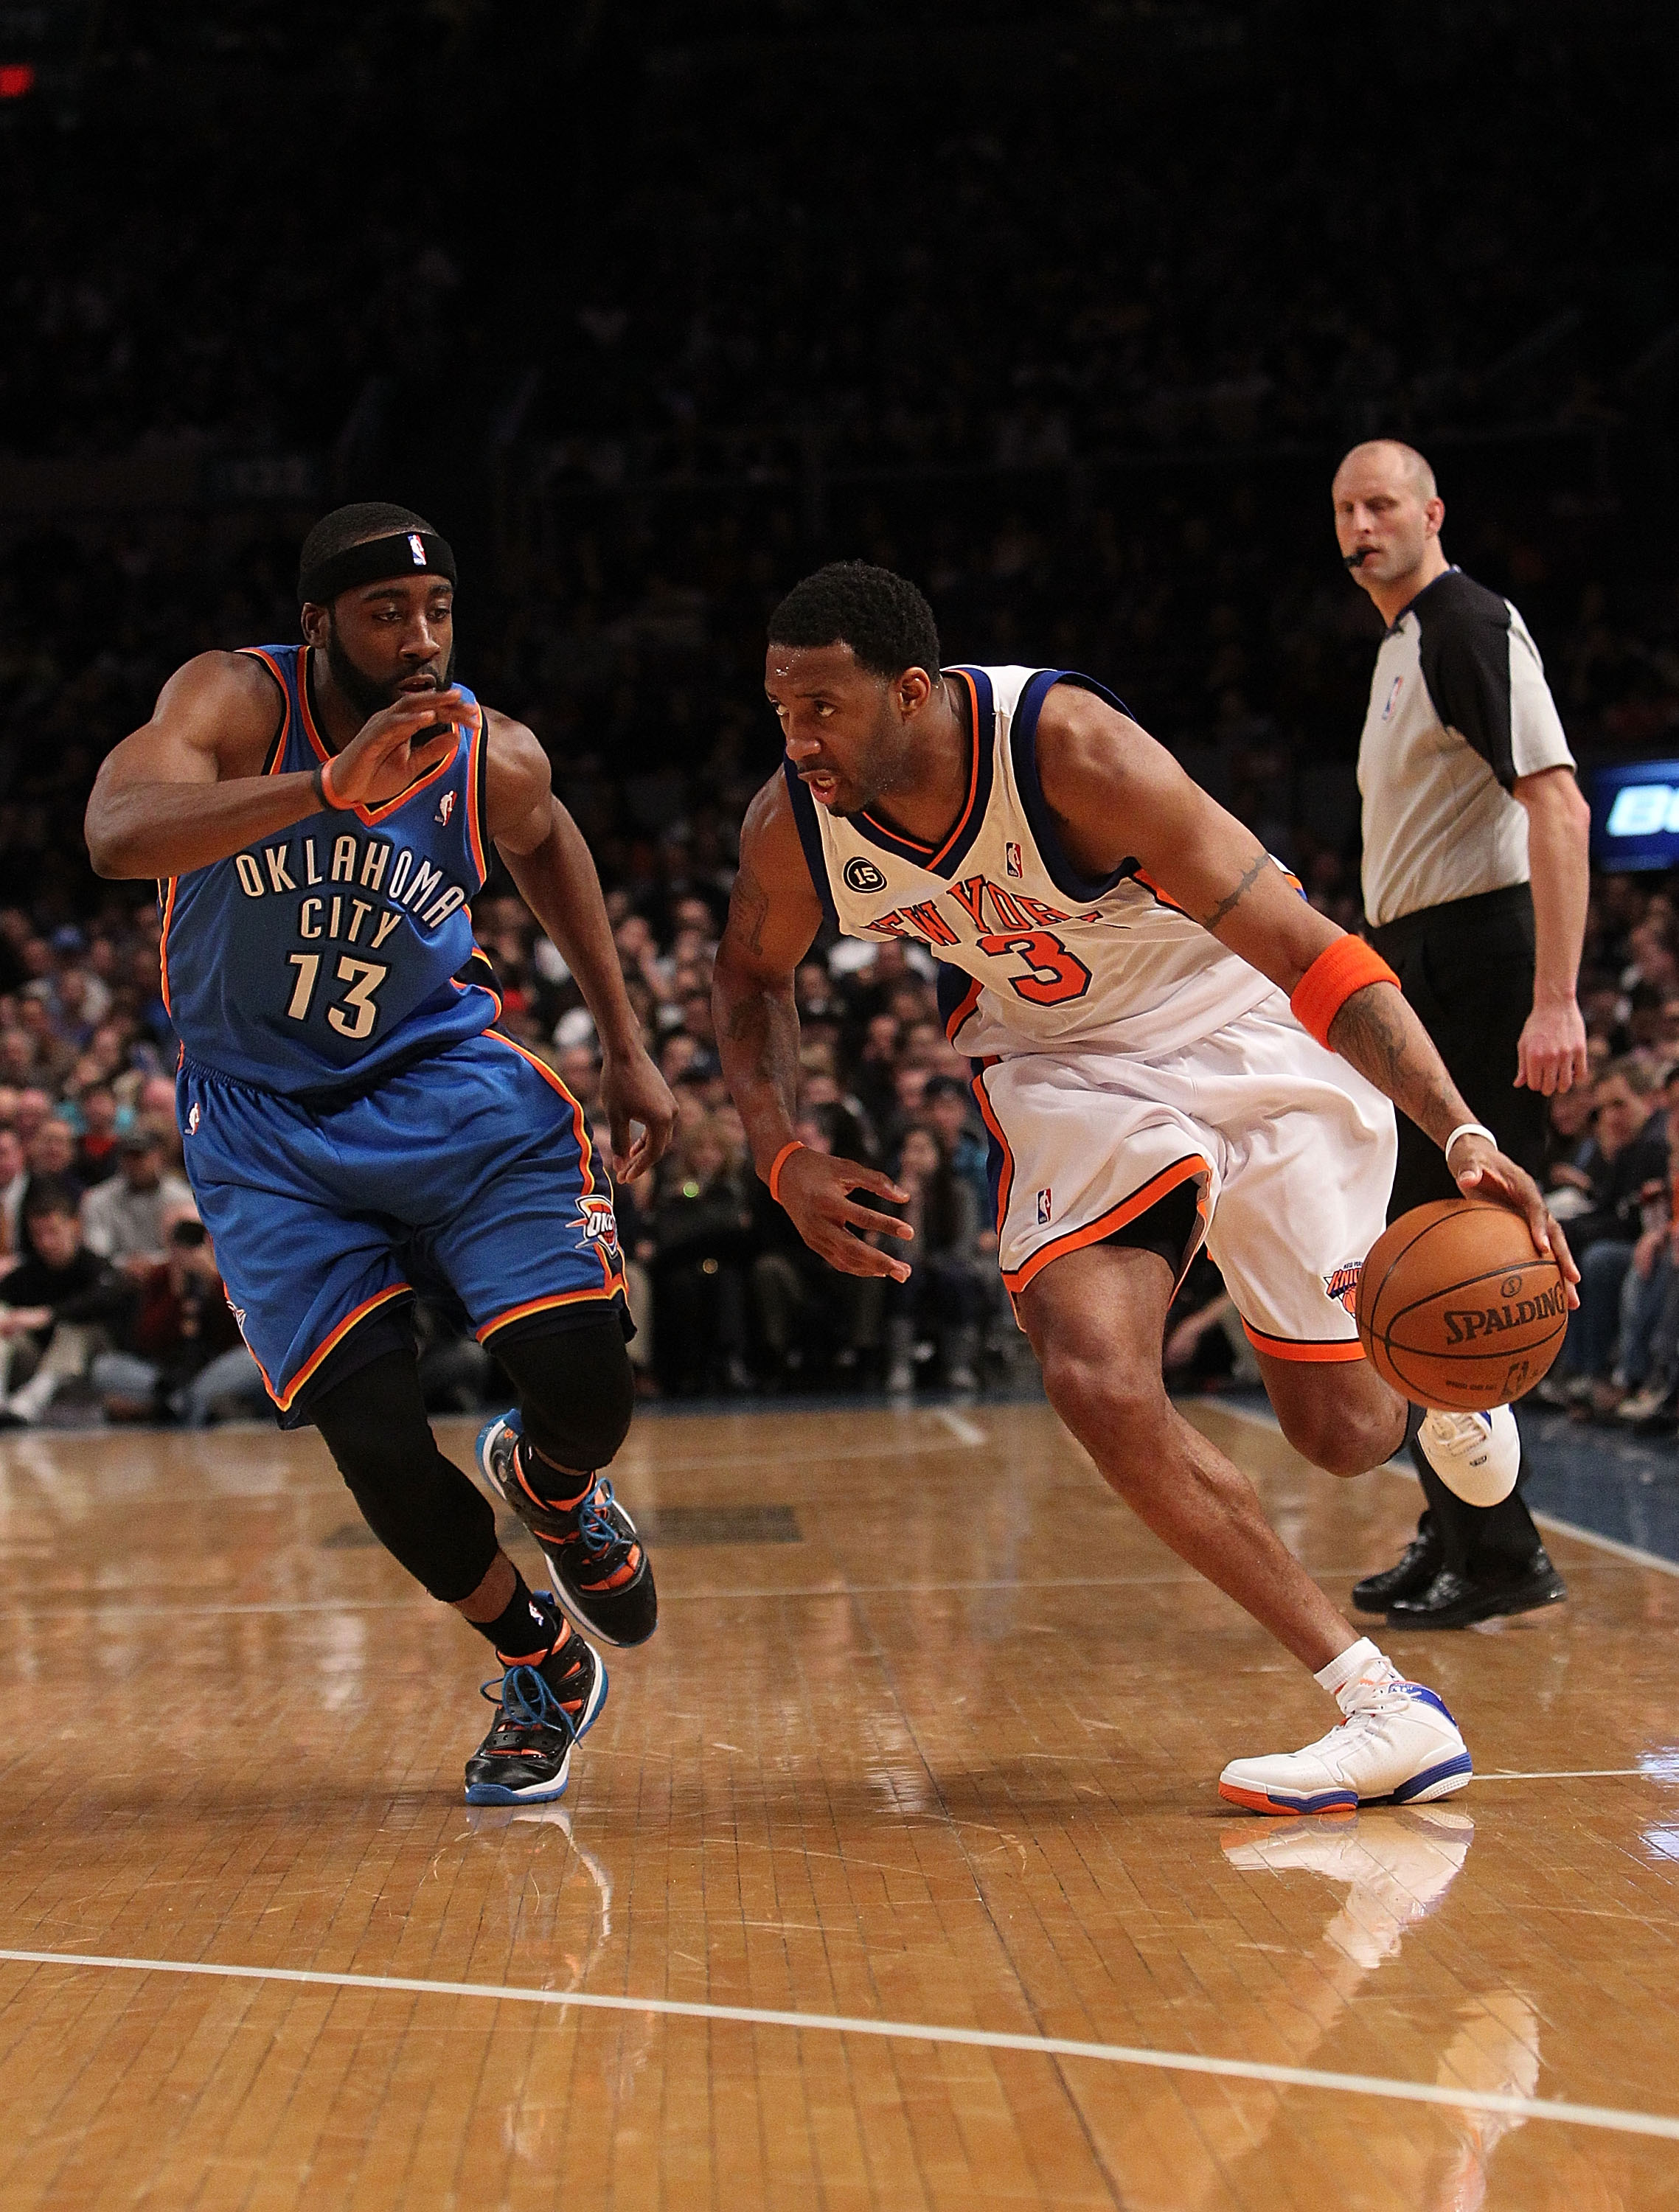 NEW YORK - FEBRUARY 20: Tracy McGrady #3 of the New York Knicks drives the ball against James Harden #13 of the Oklahoma City Thunder at Madison Square Garden on February 20, 2010 in New York, New York. NOTE TO USER: User expressly acknowledges and agrees